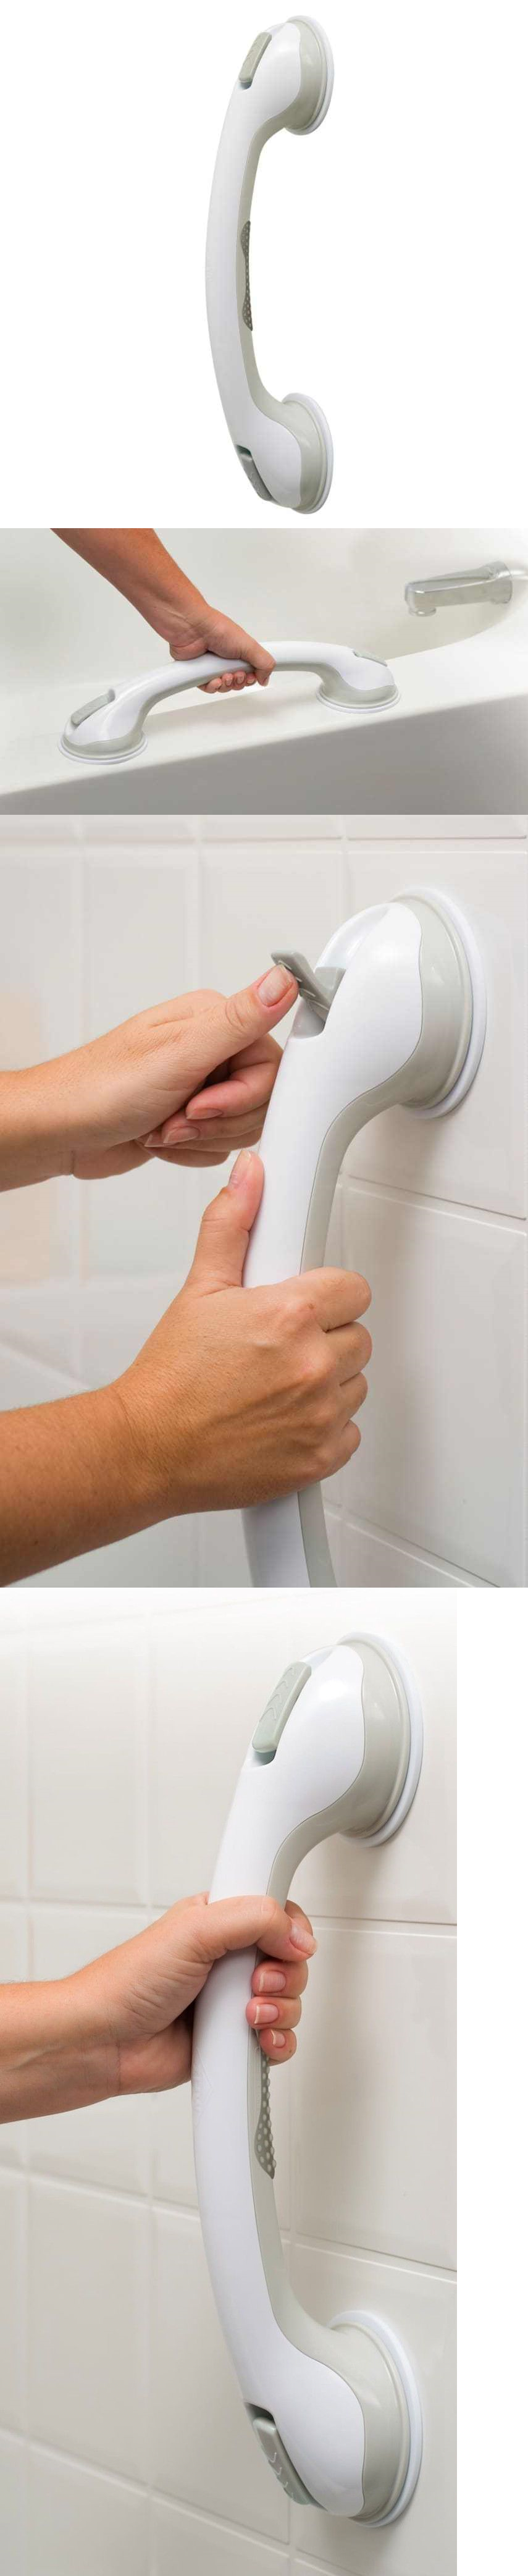 Handles and rails handicap grab bars suction cup shower aids for